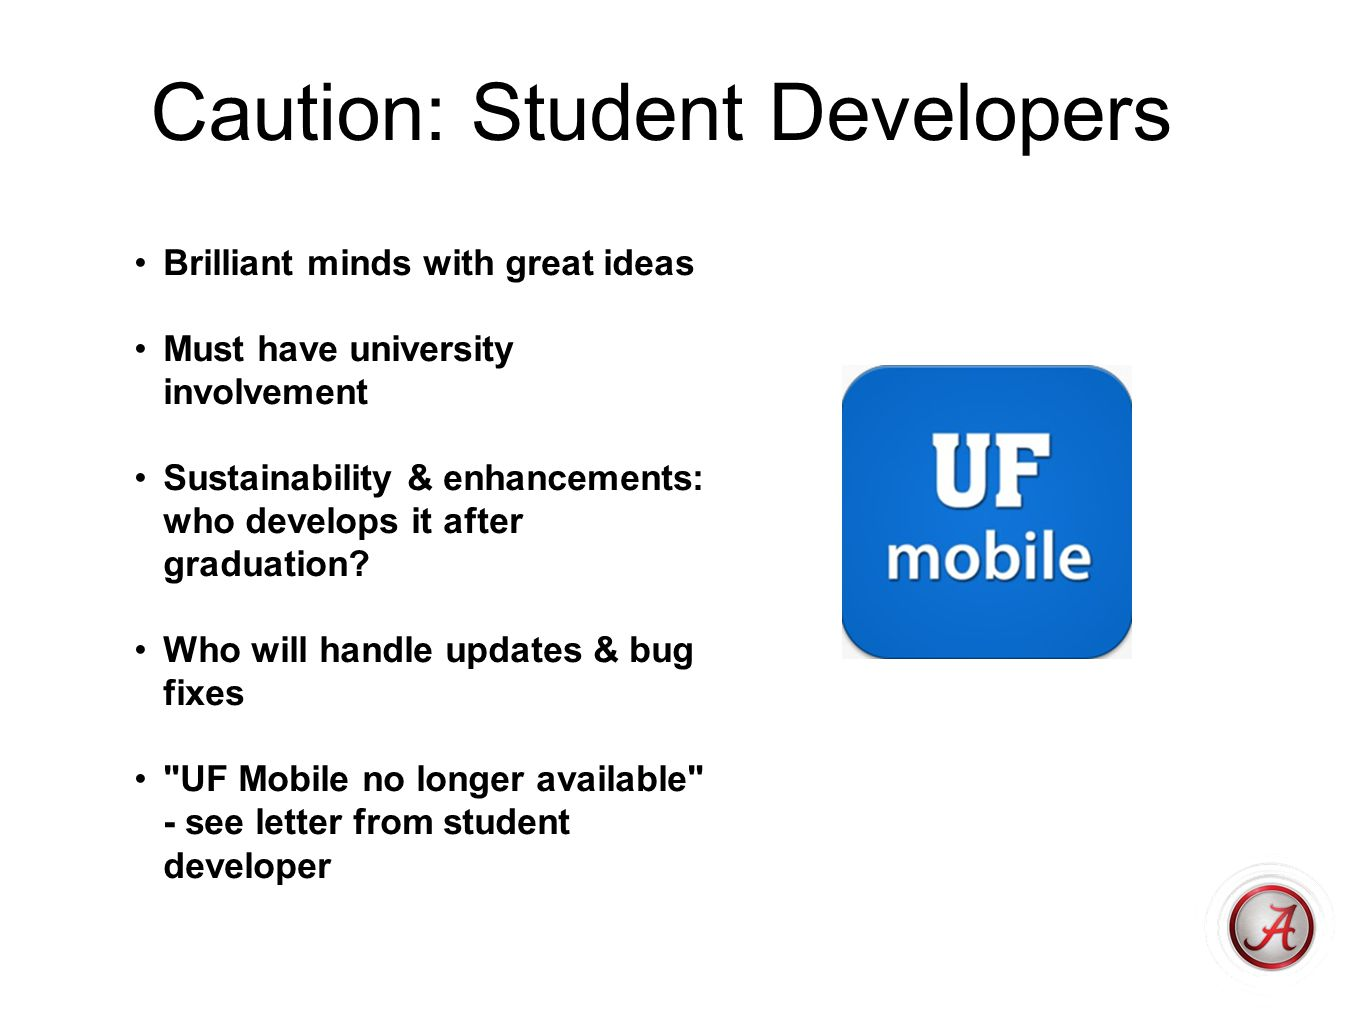 Caution: Student Developers